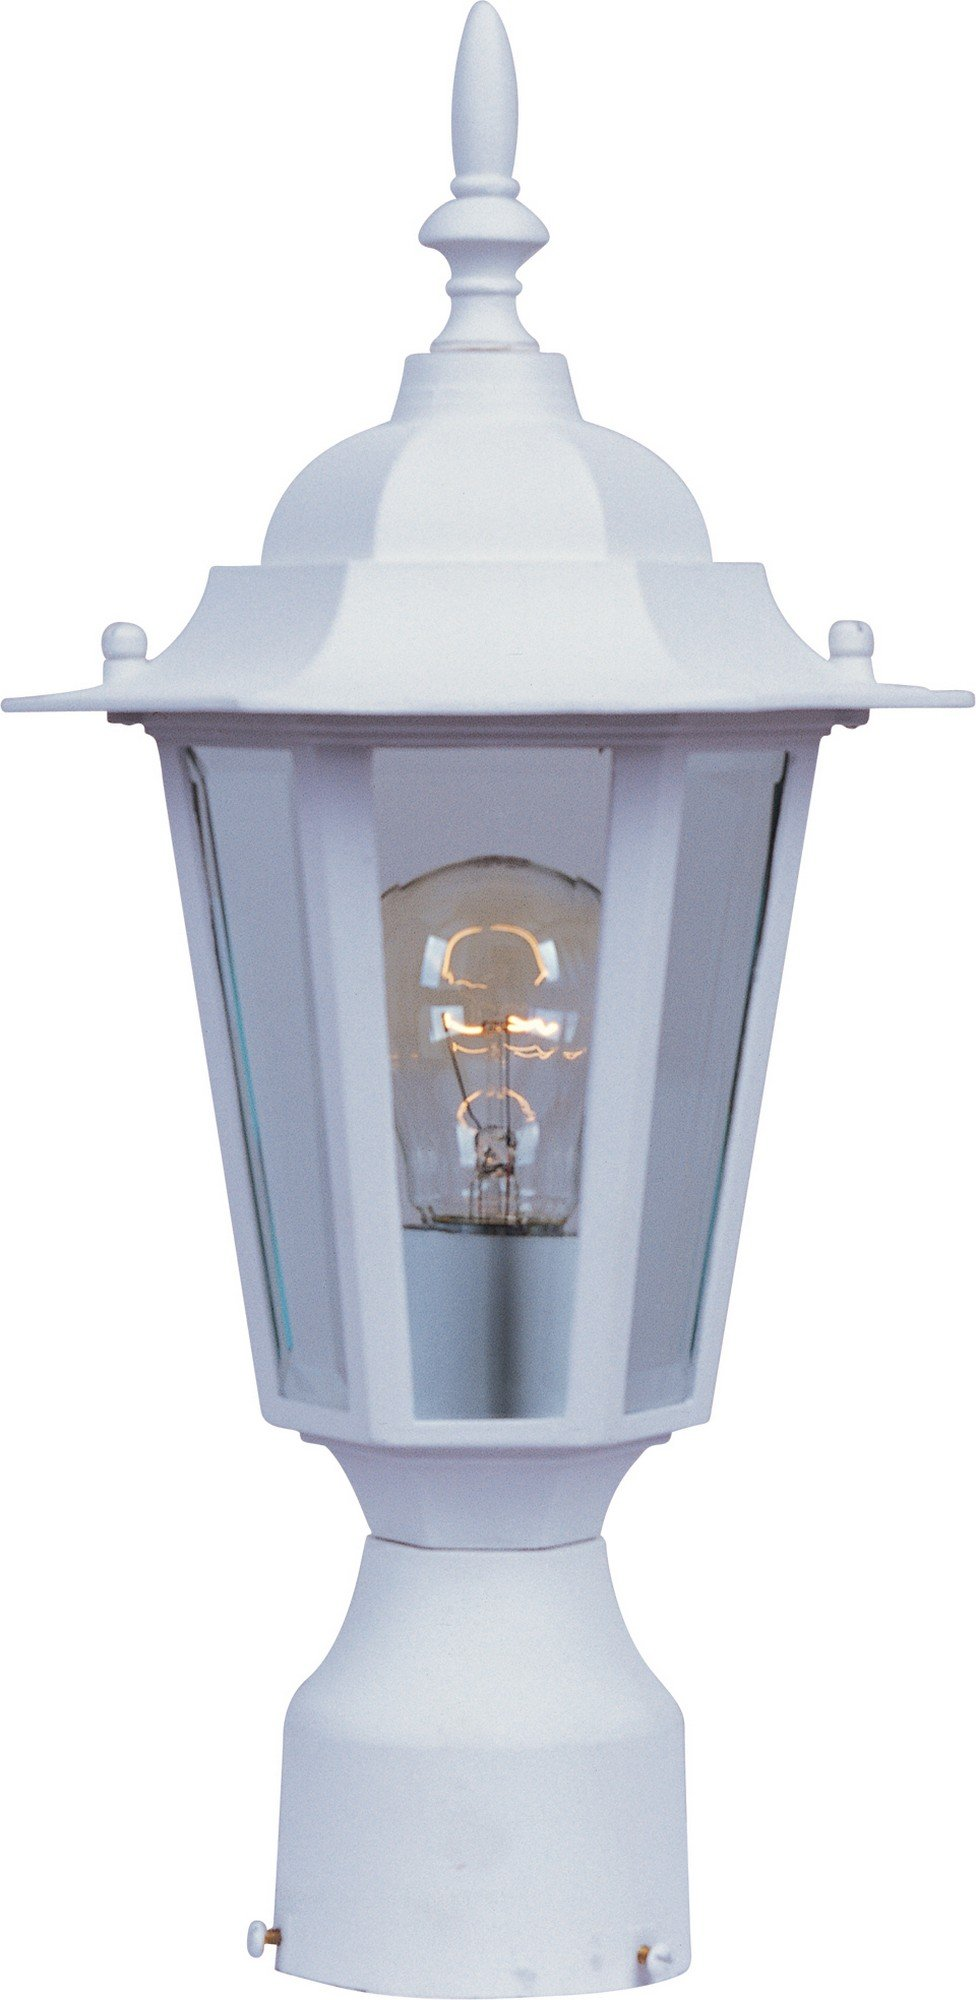 Maxim 3001CLWT Builder Cast 1-Light Outdoor Pole/Post Lantern, White Finish, Clear Glass, MB Incandescent Incandescent Bulb , 100W Max., Damp Safety Rating, Standard Dimmable, Glass Shade Material, Rated Lumens